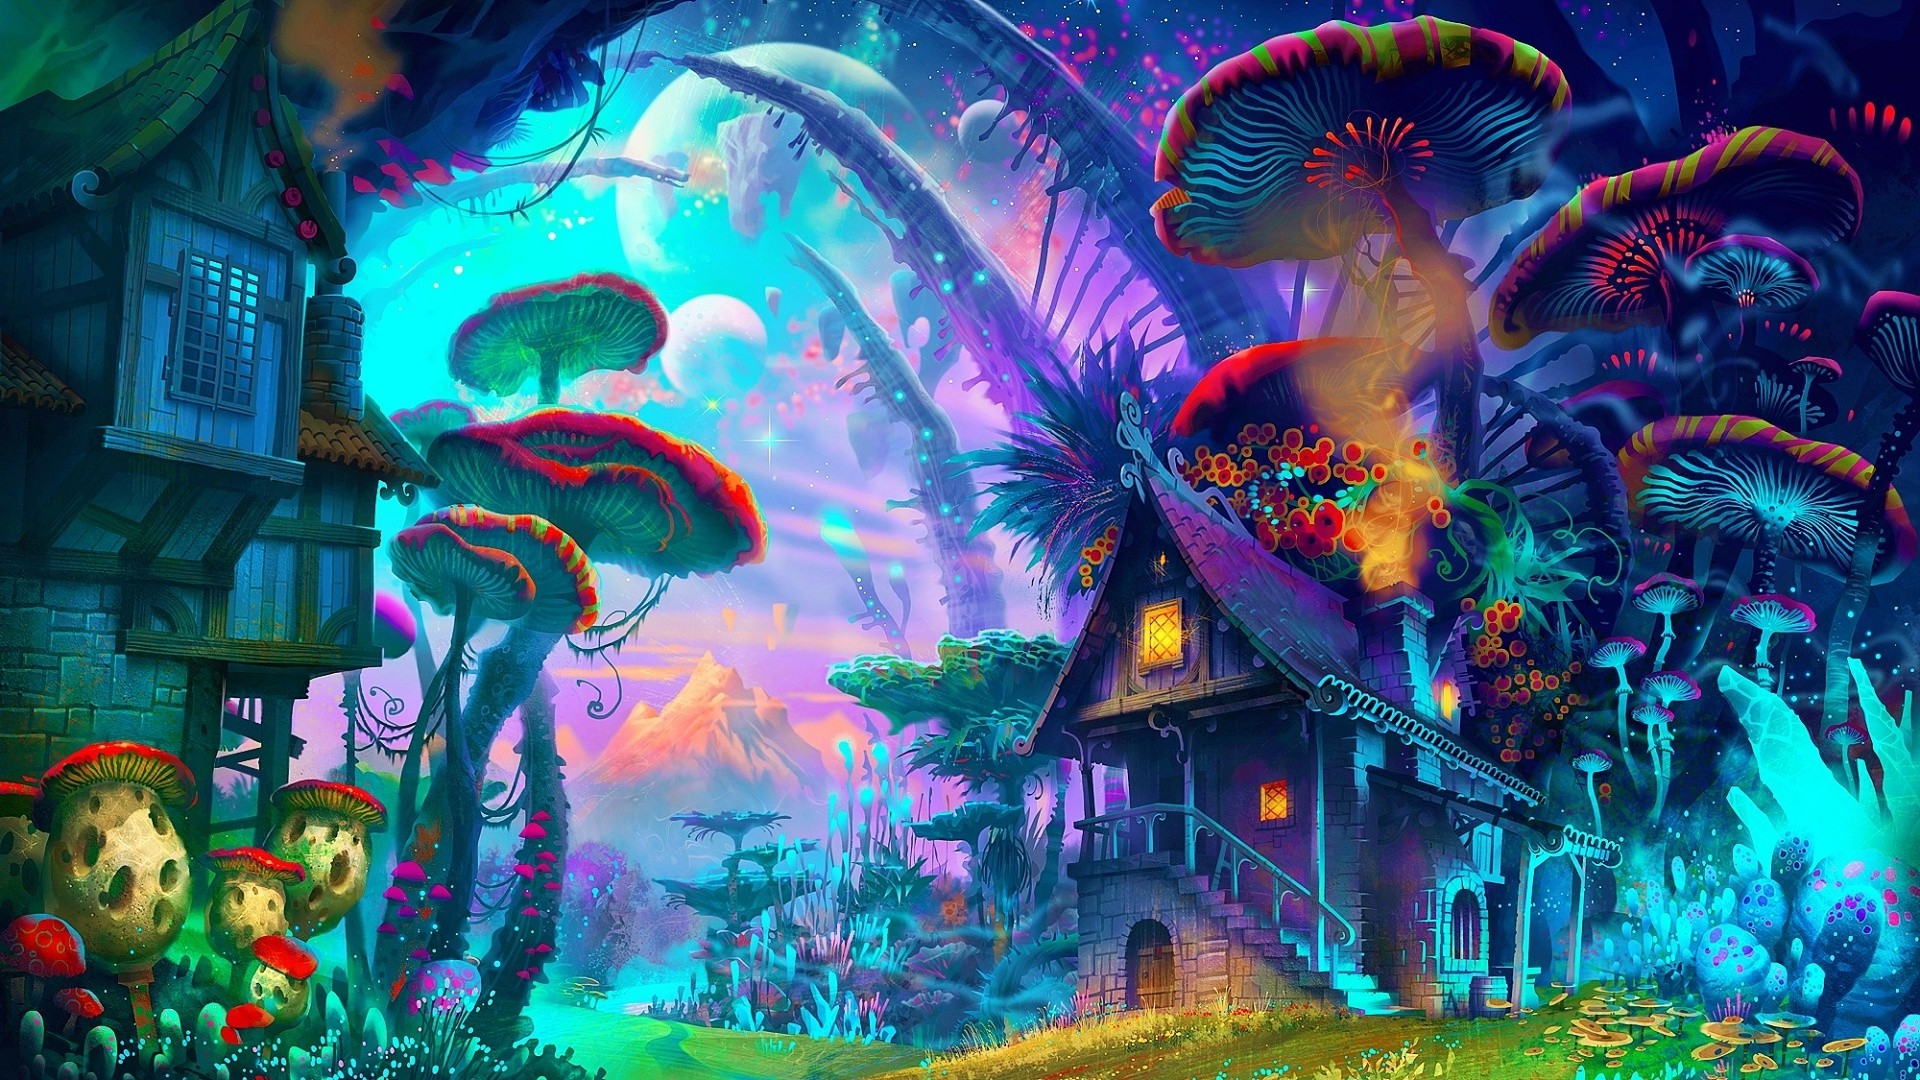 Wallpaper hd psychedelic - Trippy nature wallpaper ...